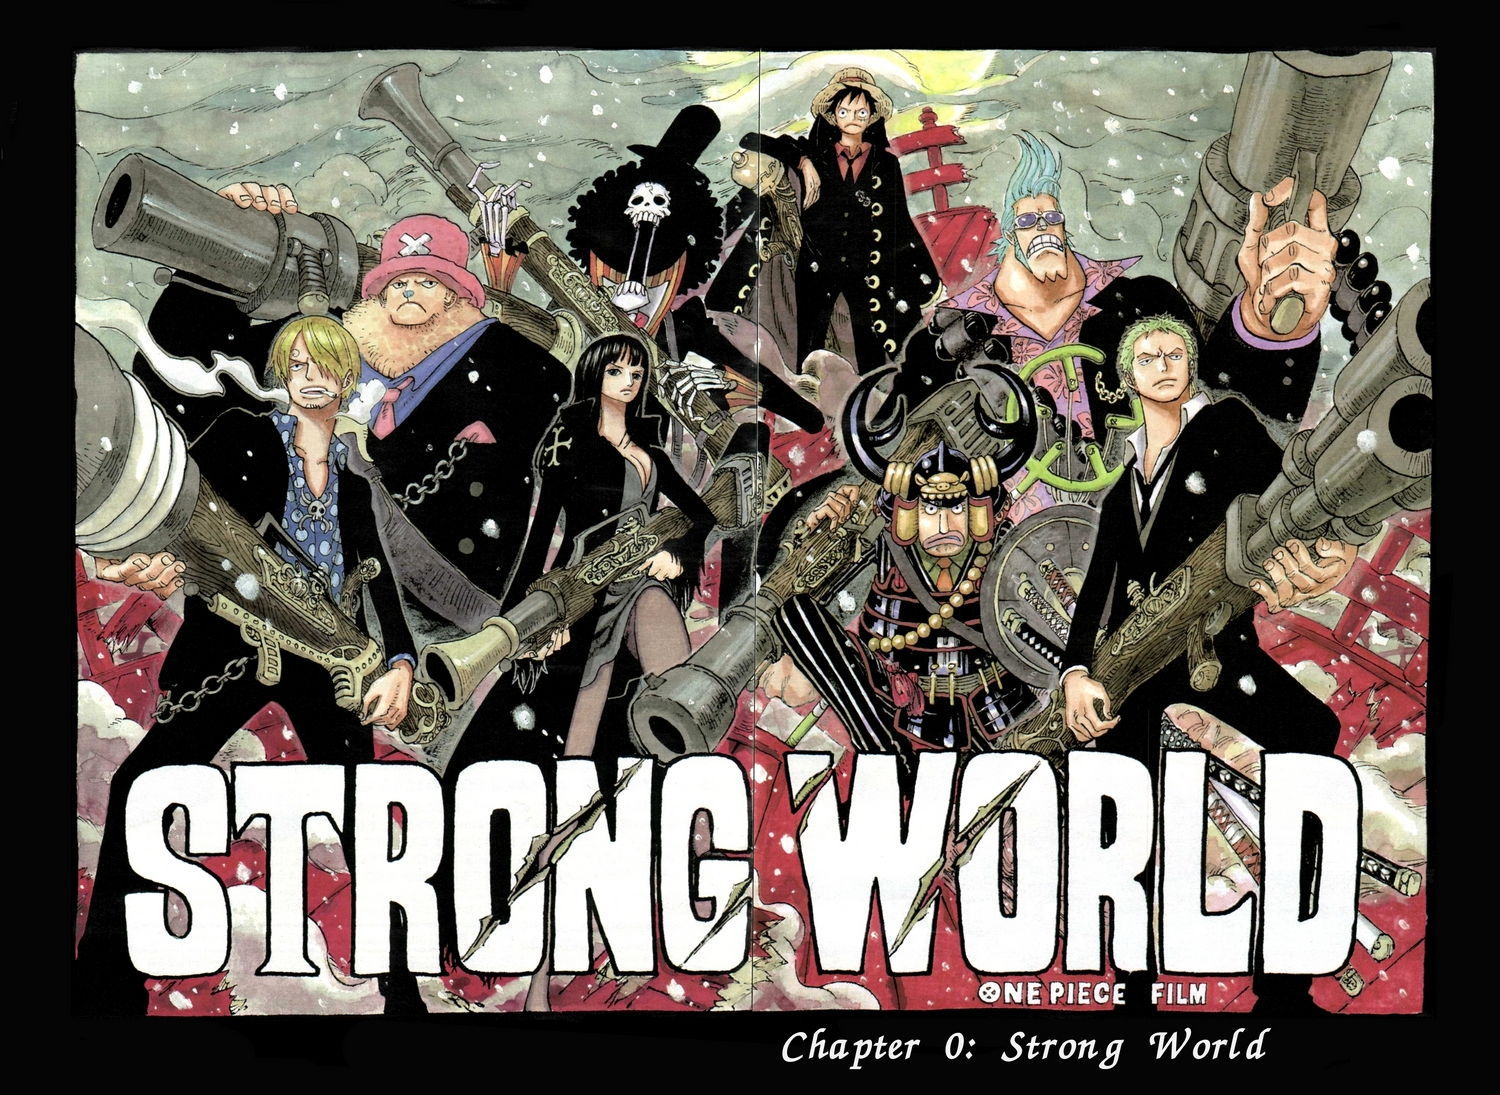 http://eastasia.fr/wp-content/uploads/2011/08/Strong-World-Zero.jpg